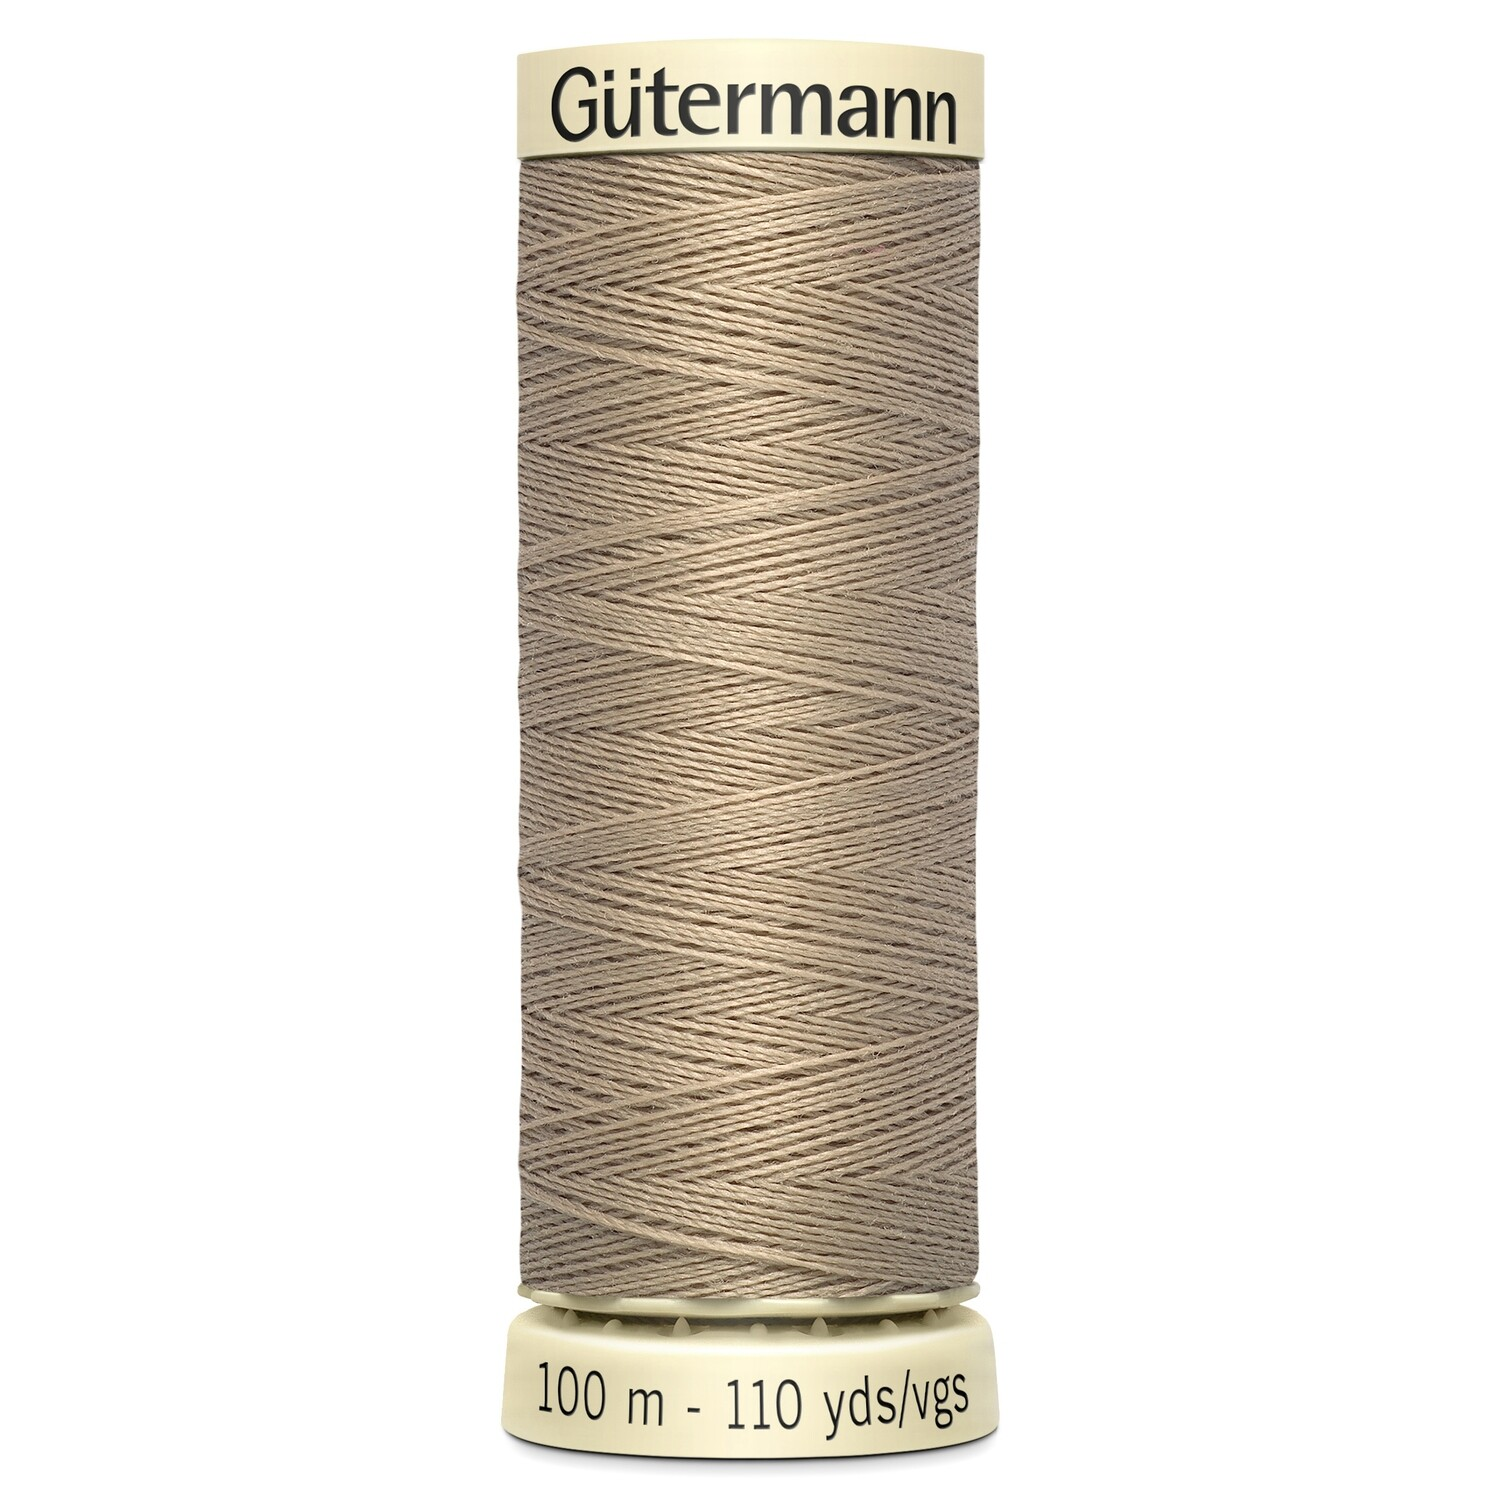 Gutermann Sew-All thread 464